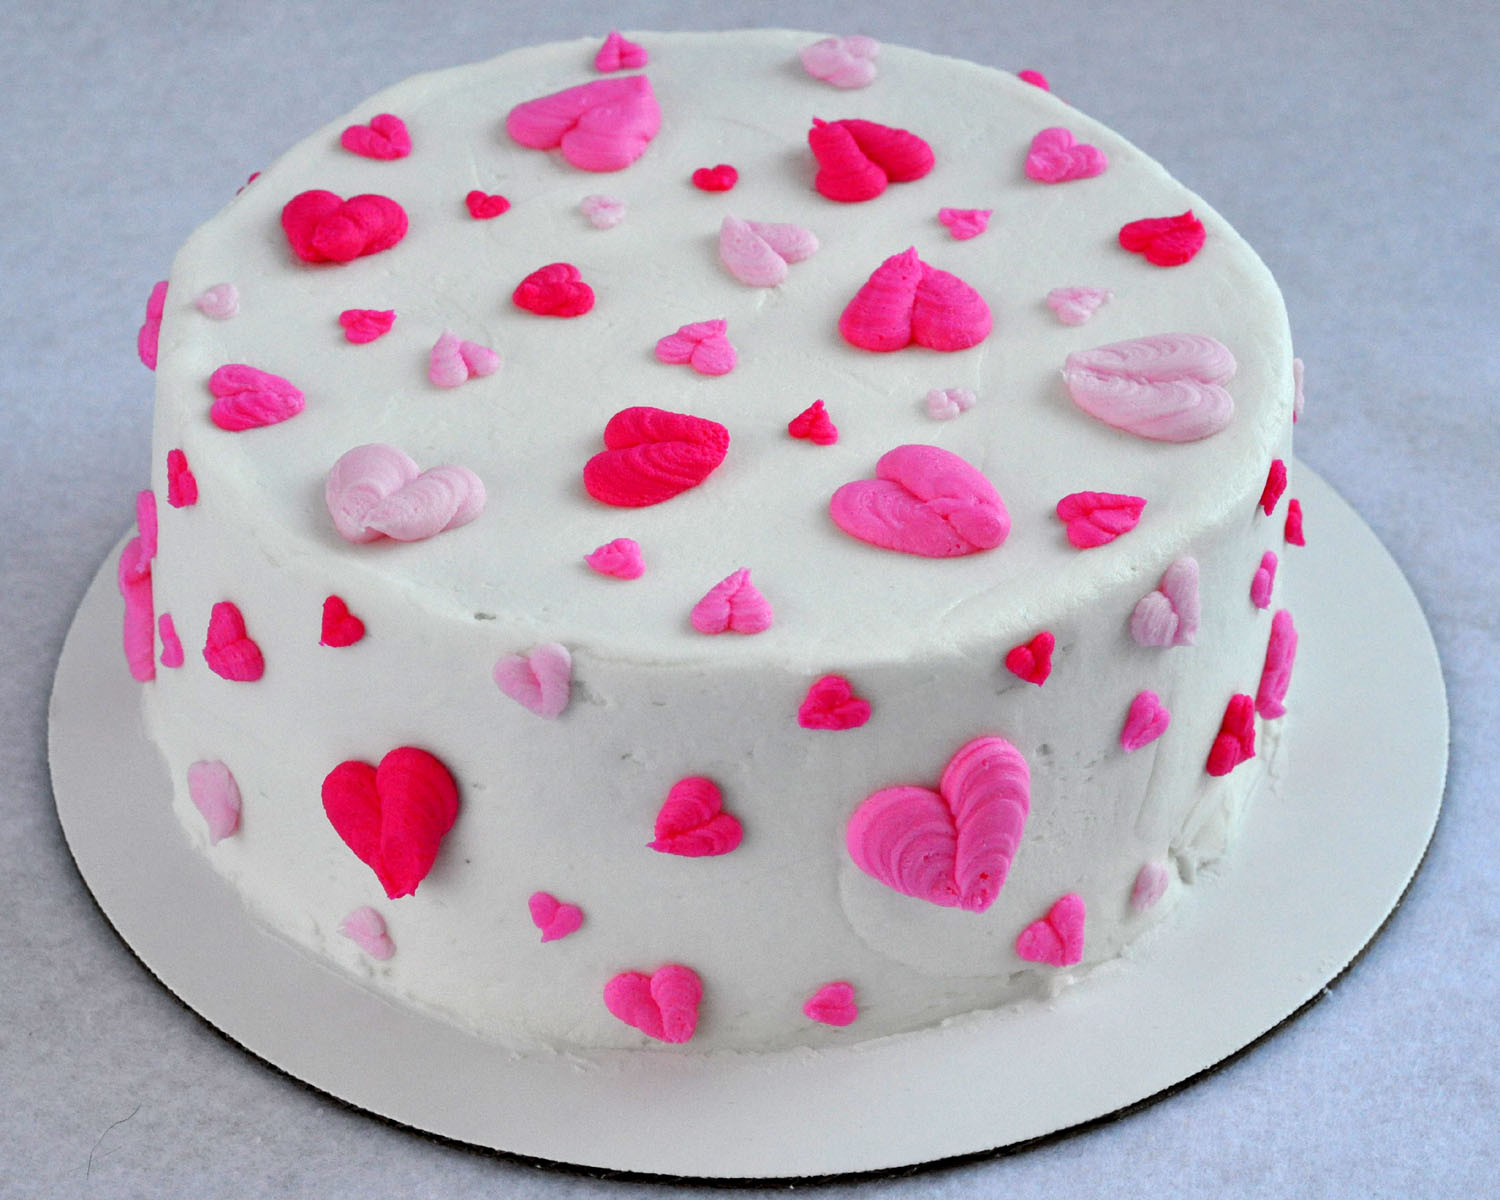 Valentine Cake Decorations Design : Beki Cook s Cake Blog: Valentine s Buttercream Heart Cake